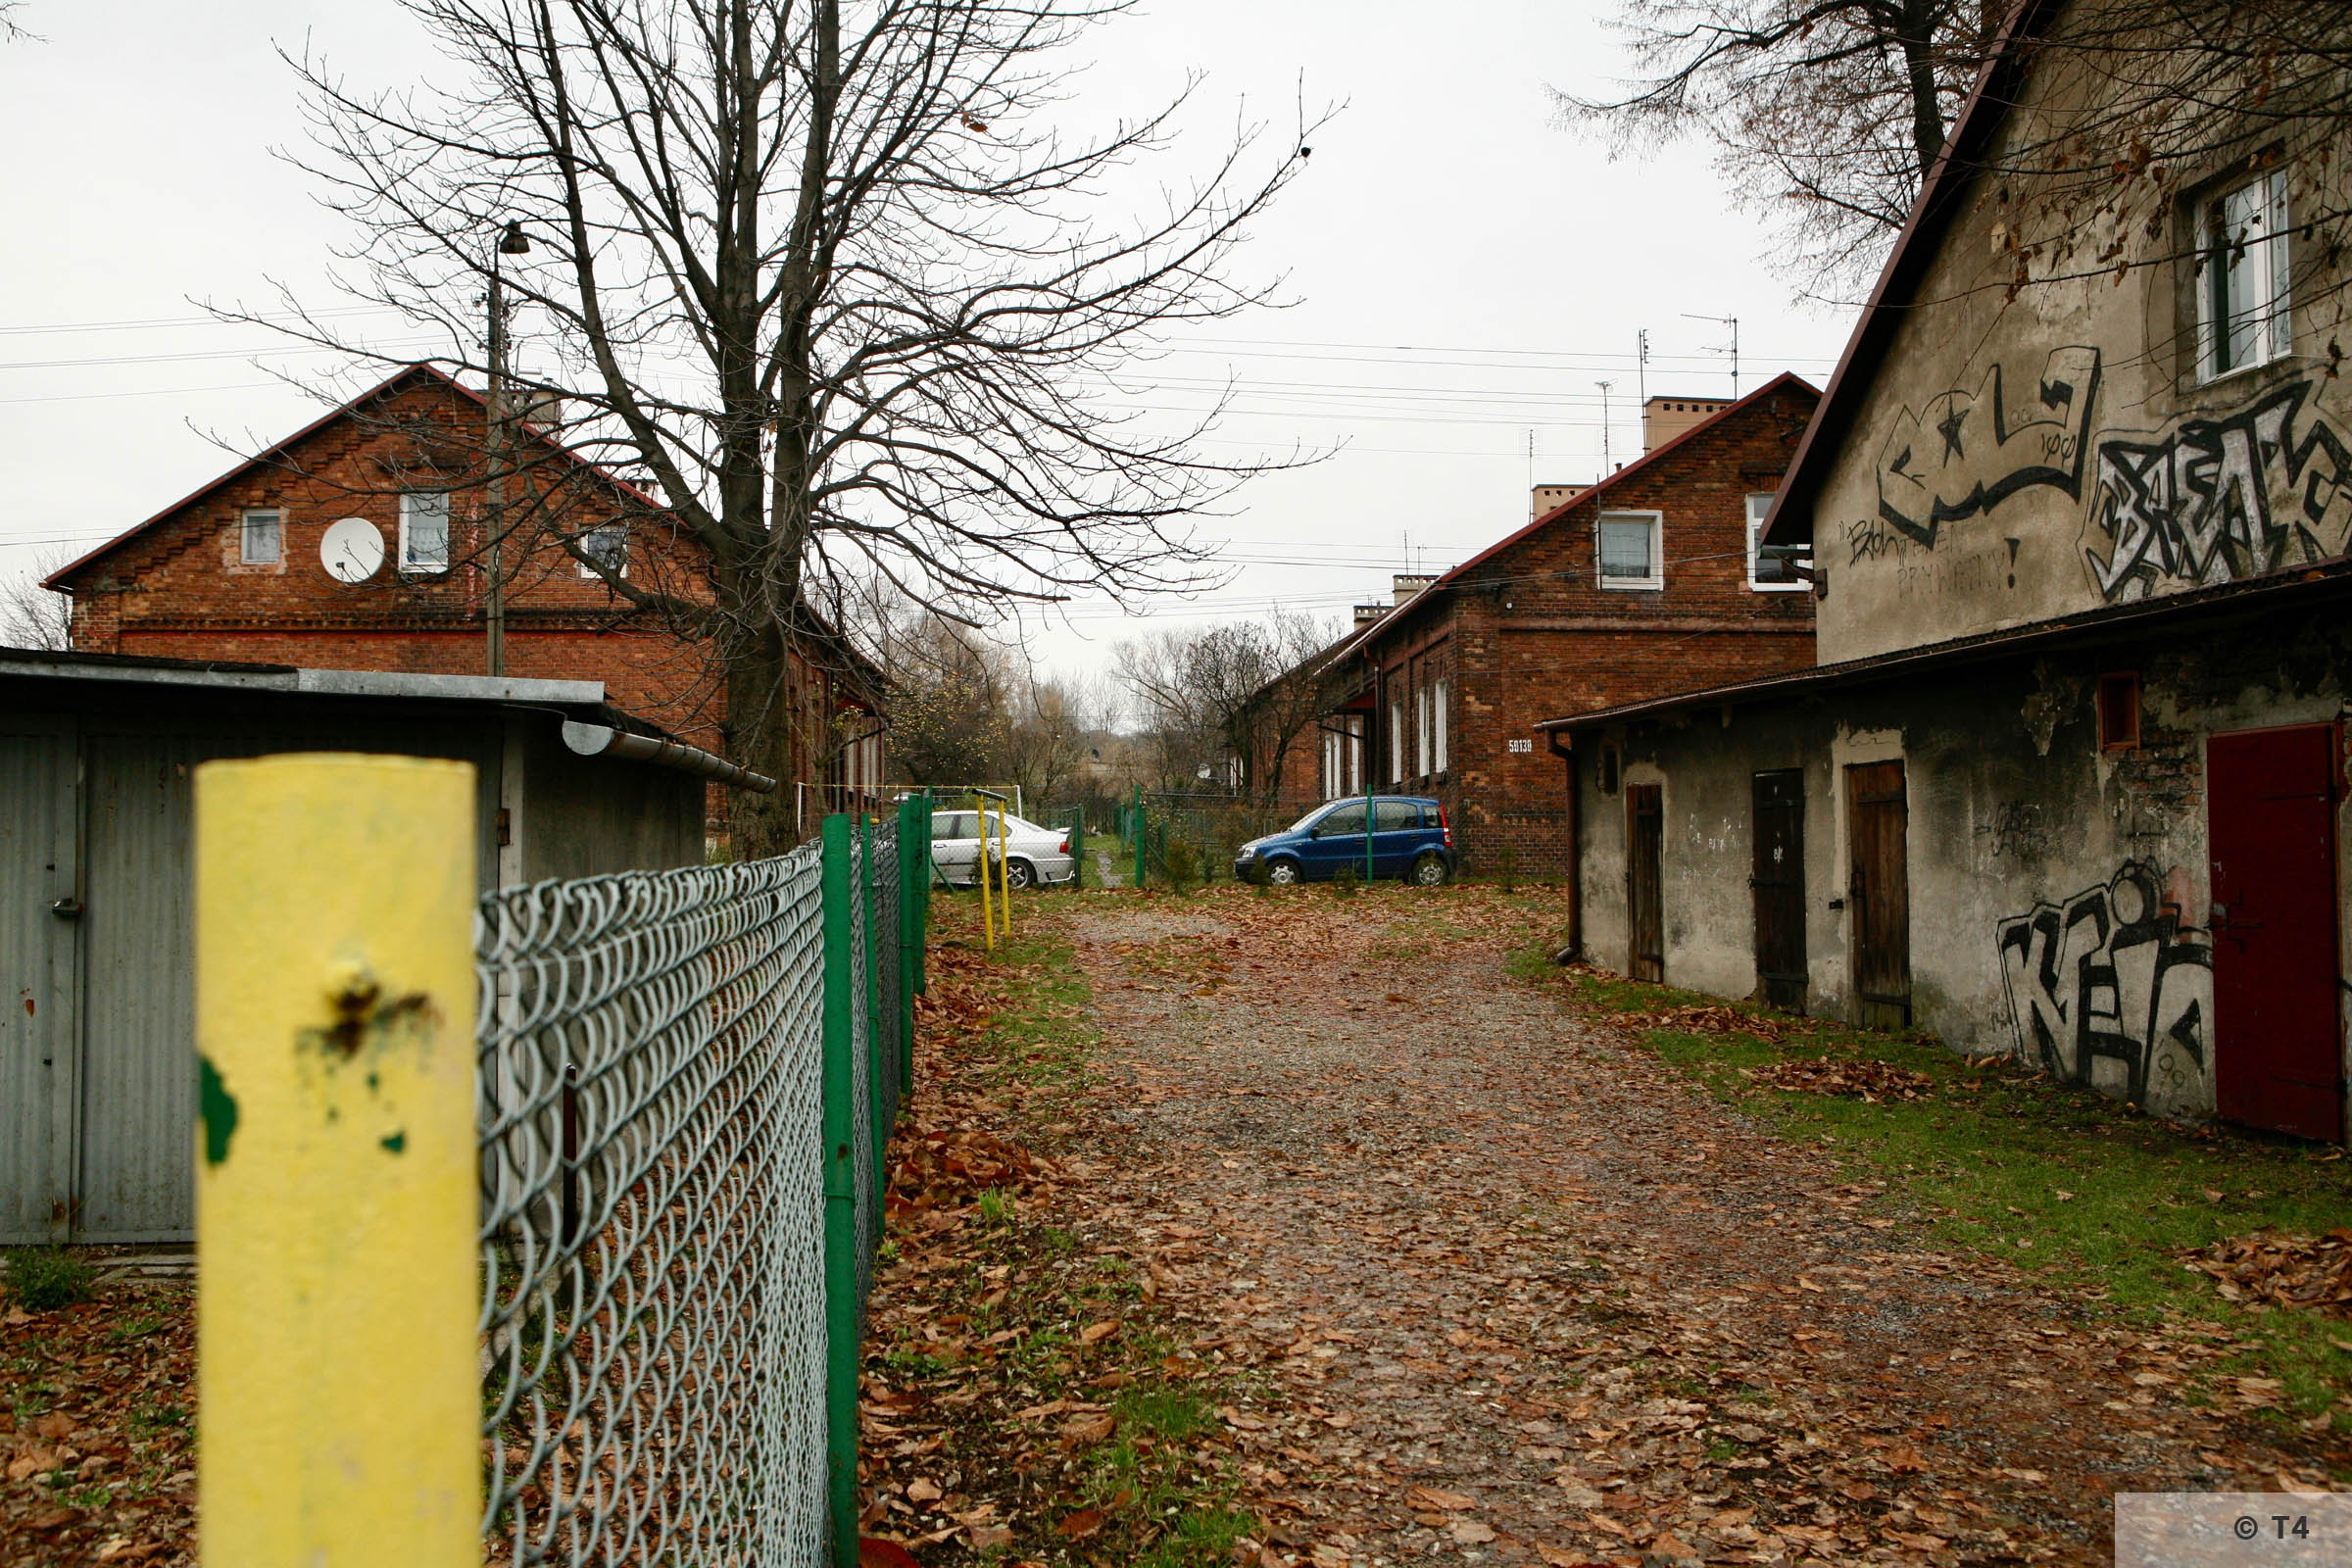 Housing estate for senior civilian employees working at the refinery. 2007 T4 4029